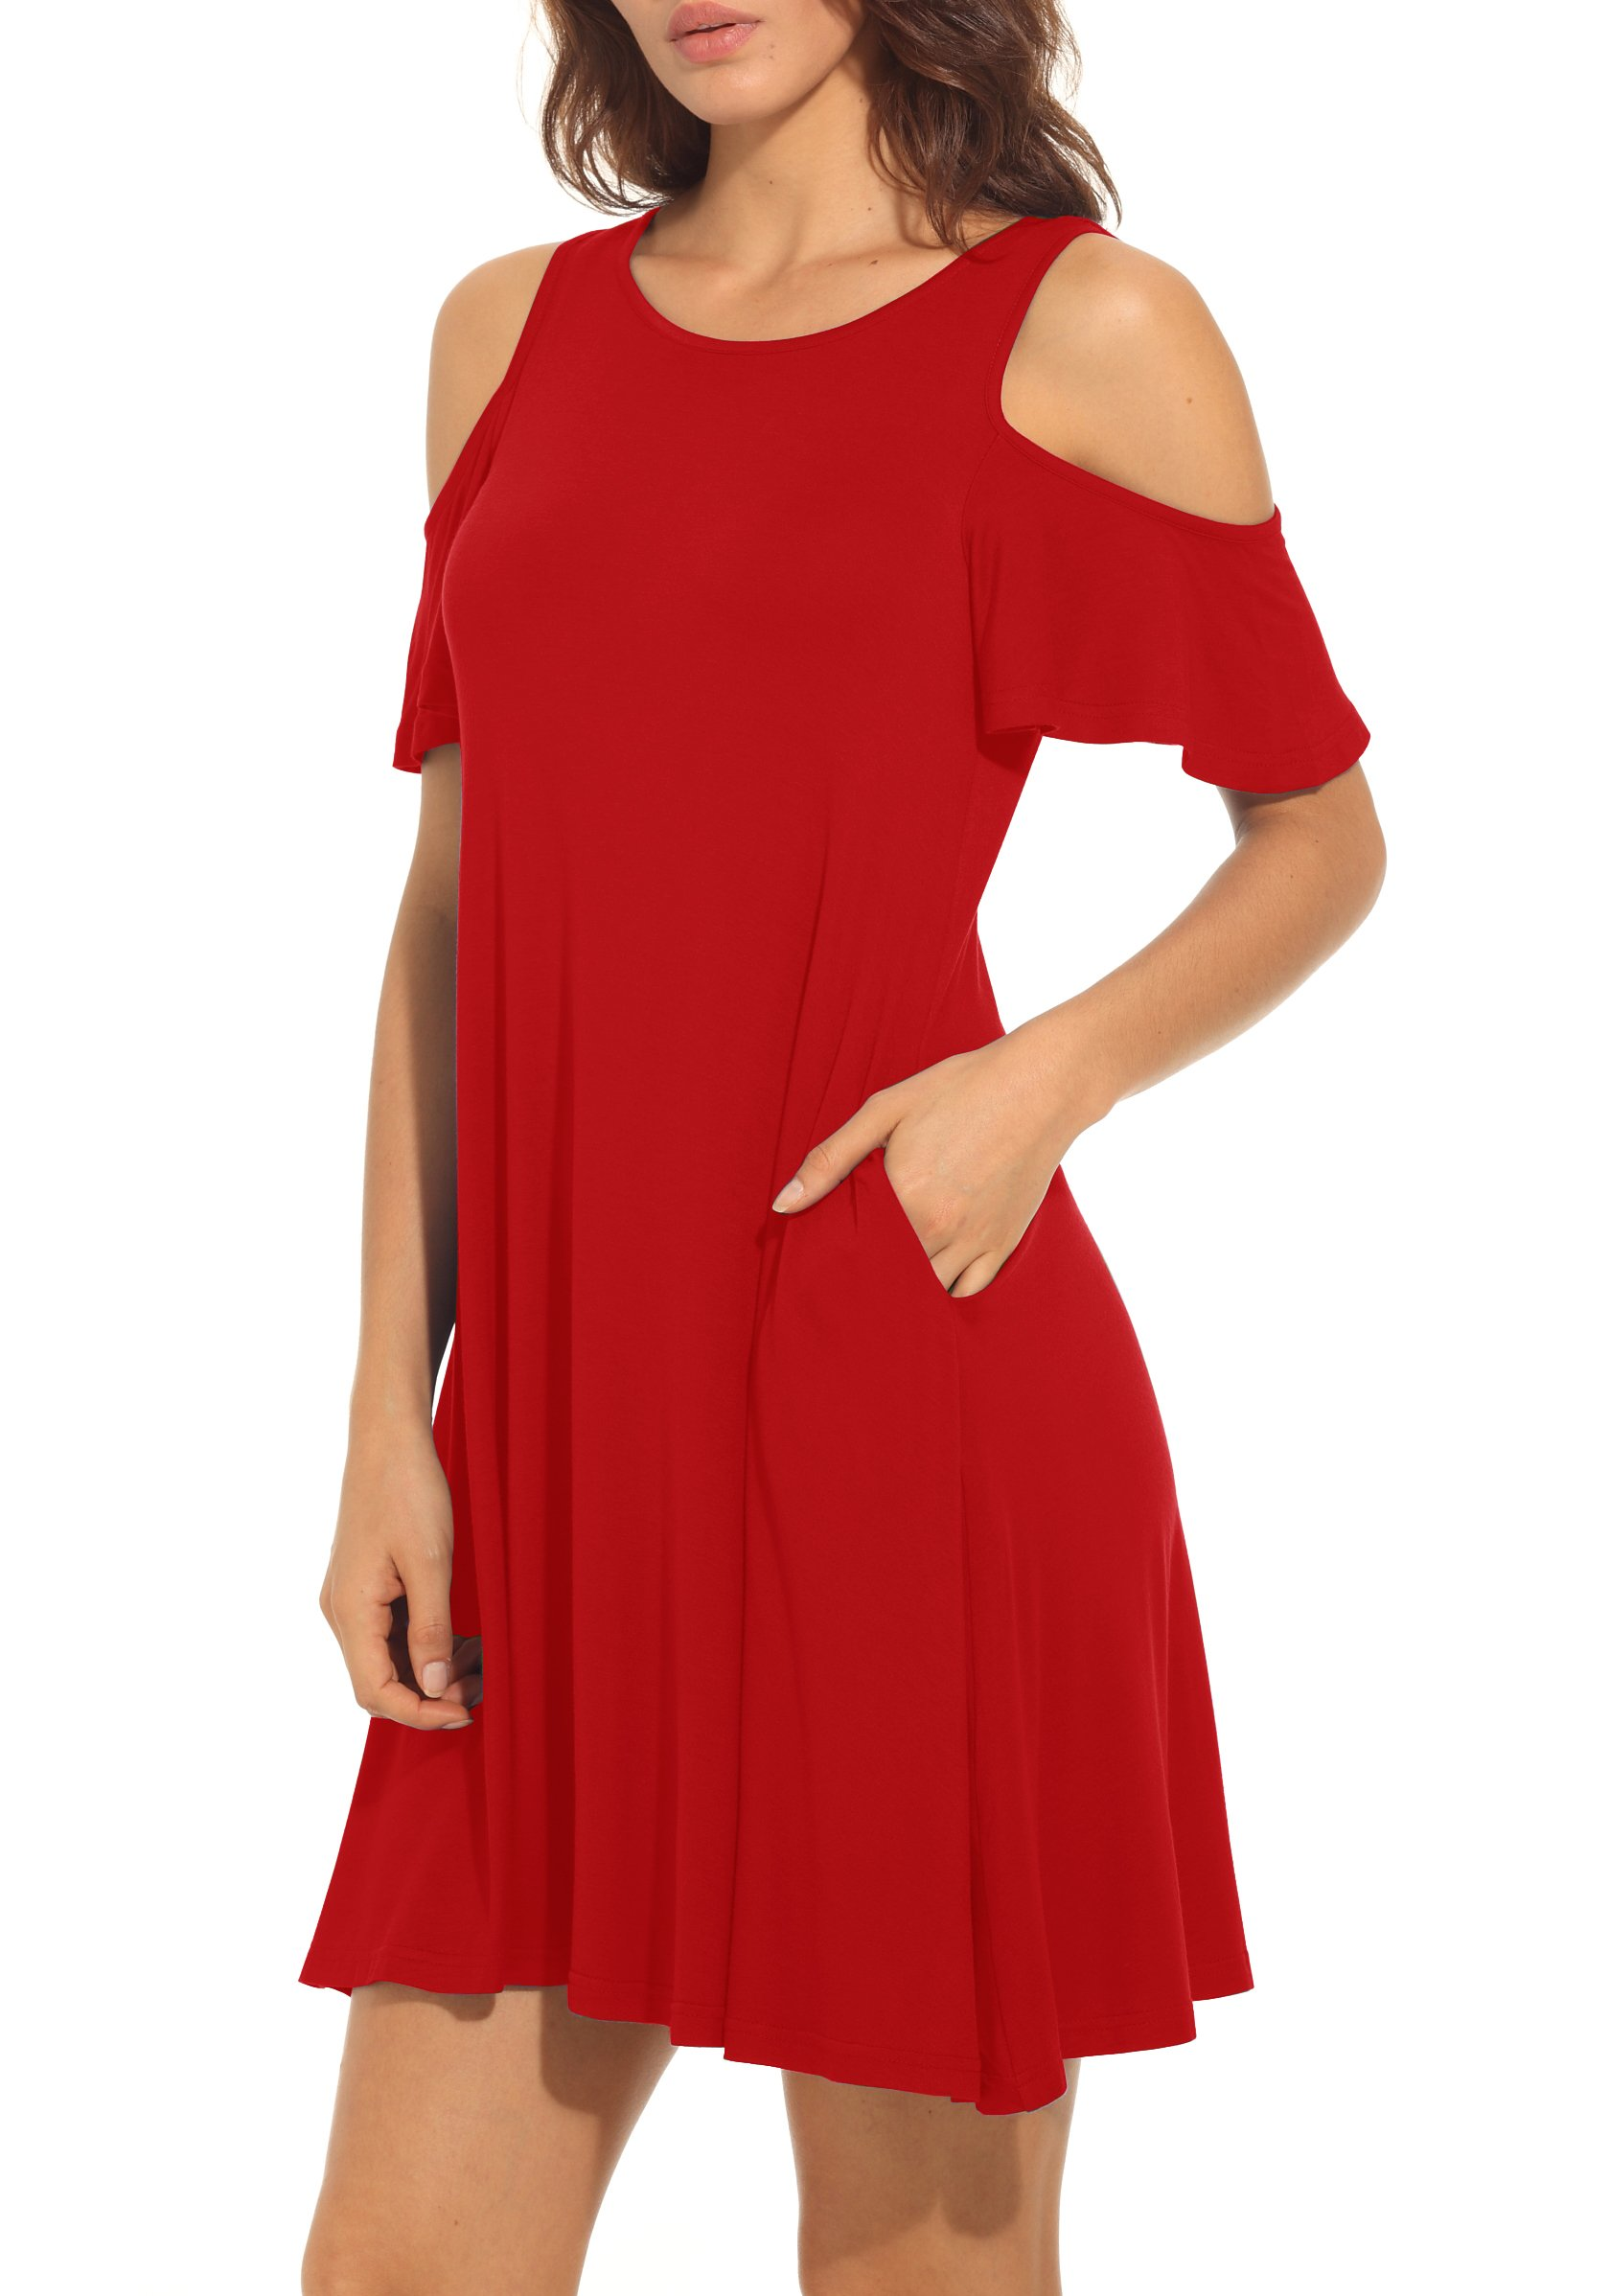 QIXING Women's Summer Cold Shoulder Tunic Top Swing T-Shirt Loose Dress with Pockets Red-M